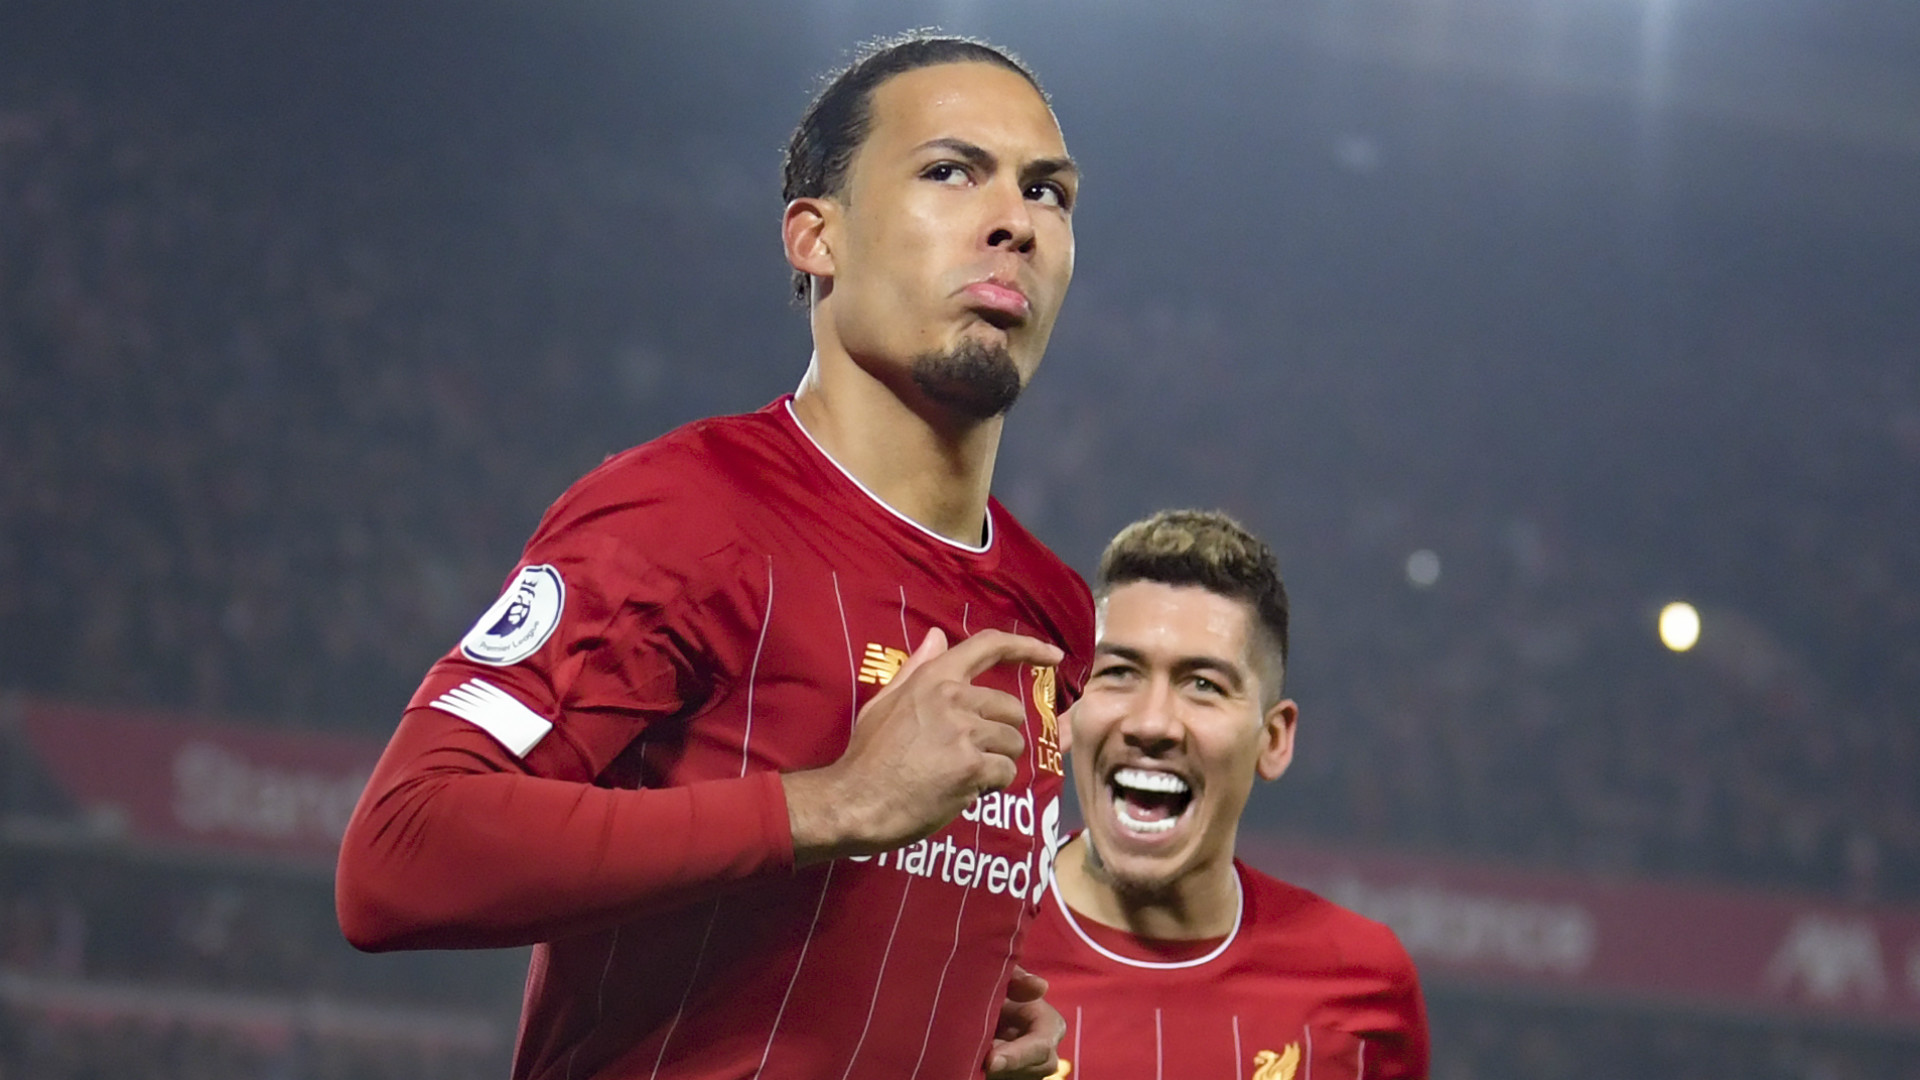 'Van Dijk was Ferdinand in the making' - Liverpool star compared to ex-Man Utd defender by former manager Lennon